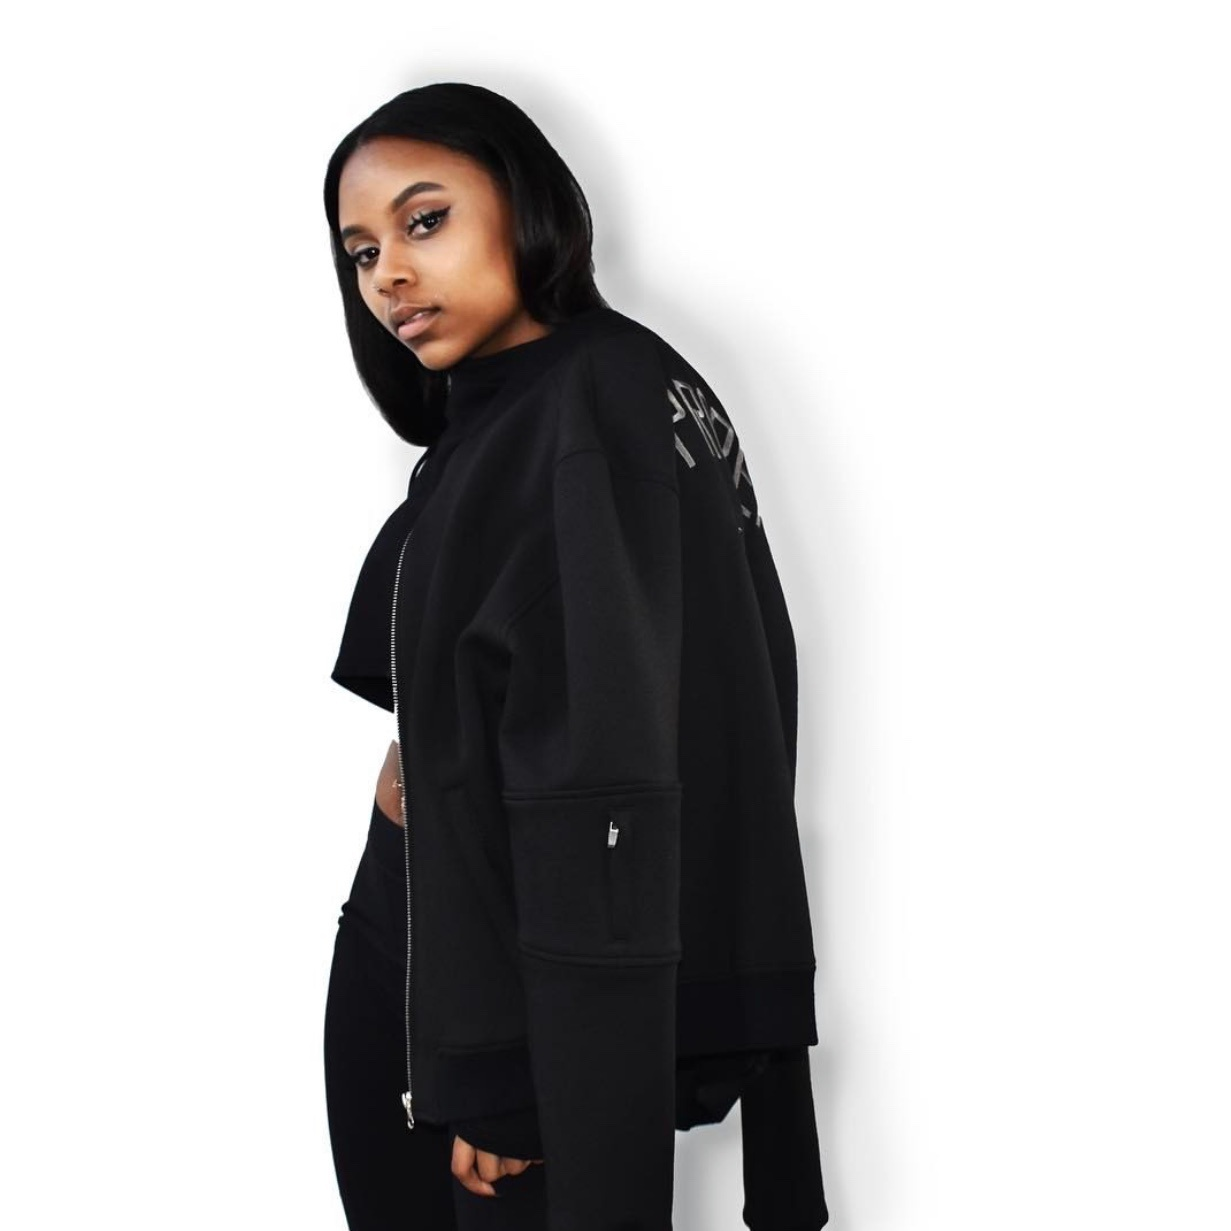 """Charlé Jay aka Lay Luscious Slam Poet, Song Writer & Professional Dancer.  Lay is an international competitor, working with brands such as Nike, World Star, and has featured in """"Oxygen's Sisterhood of Hip Hop""""…"""